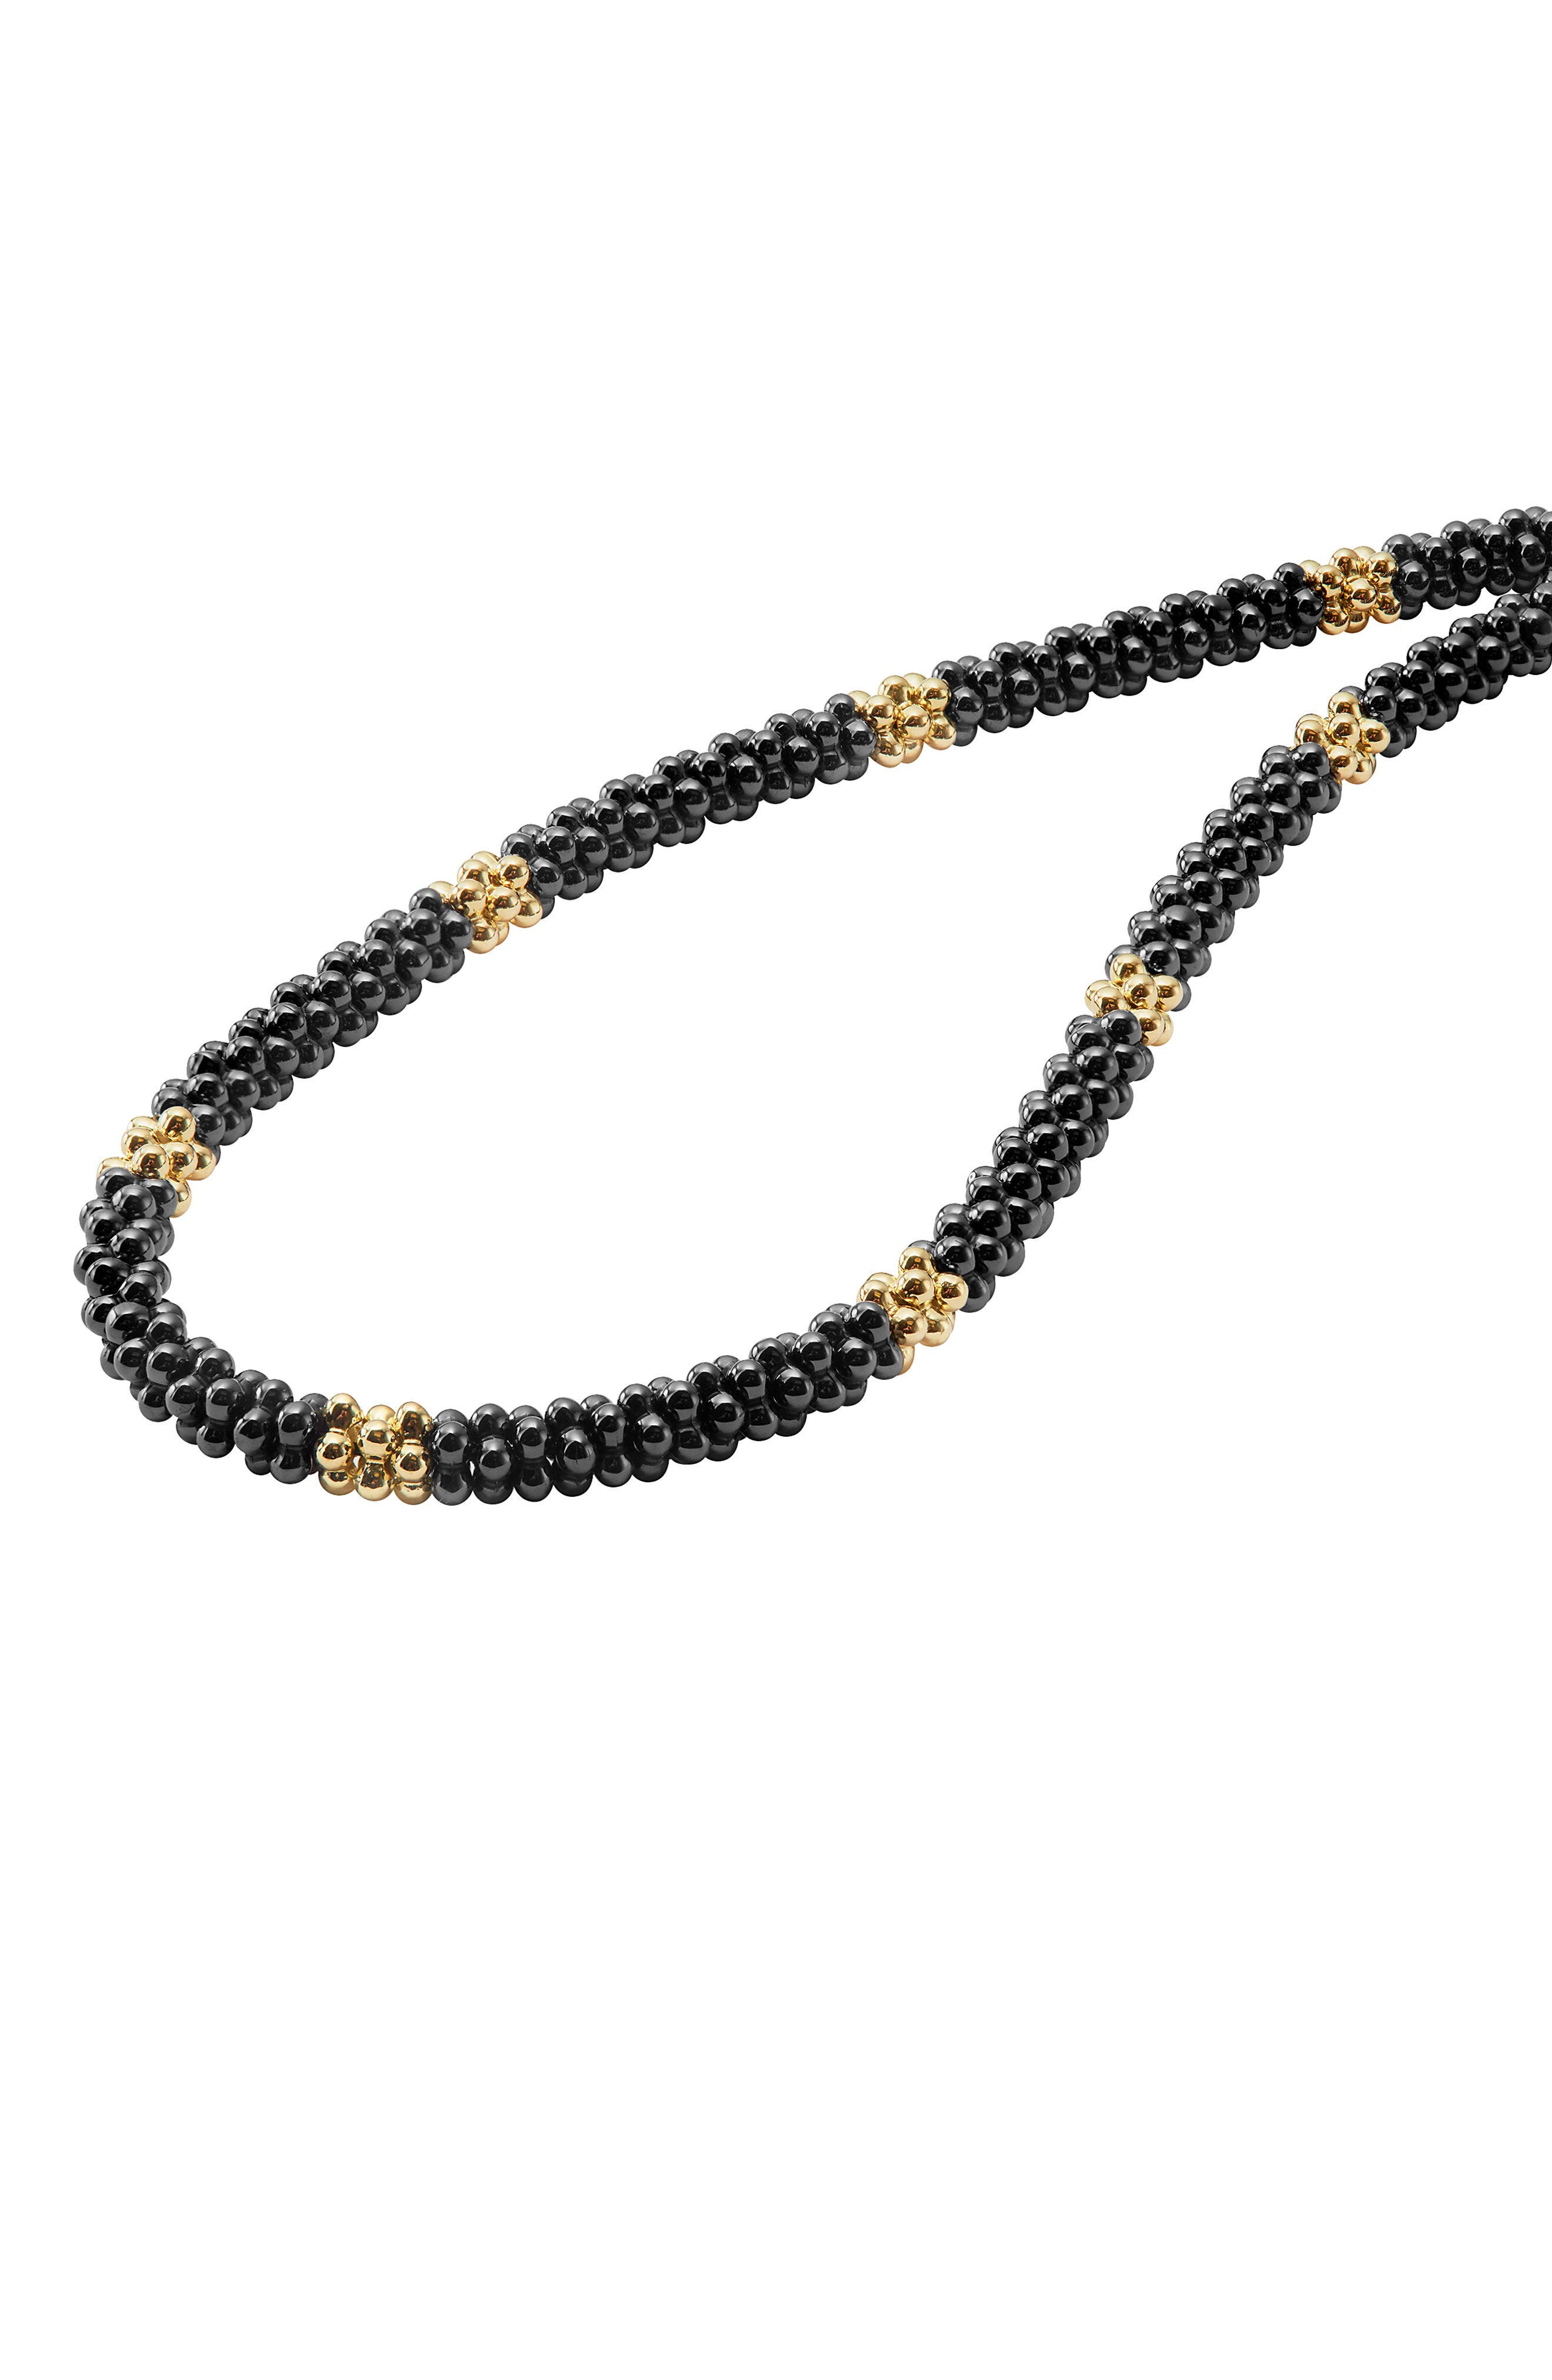 18K Gold & Black Caviar Bead Rope Necklace,                             Alternate thumbnail 4, color,                             Gold